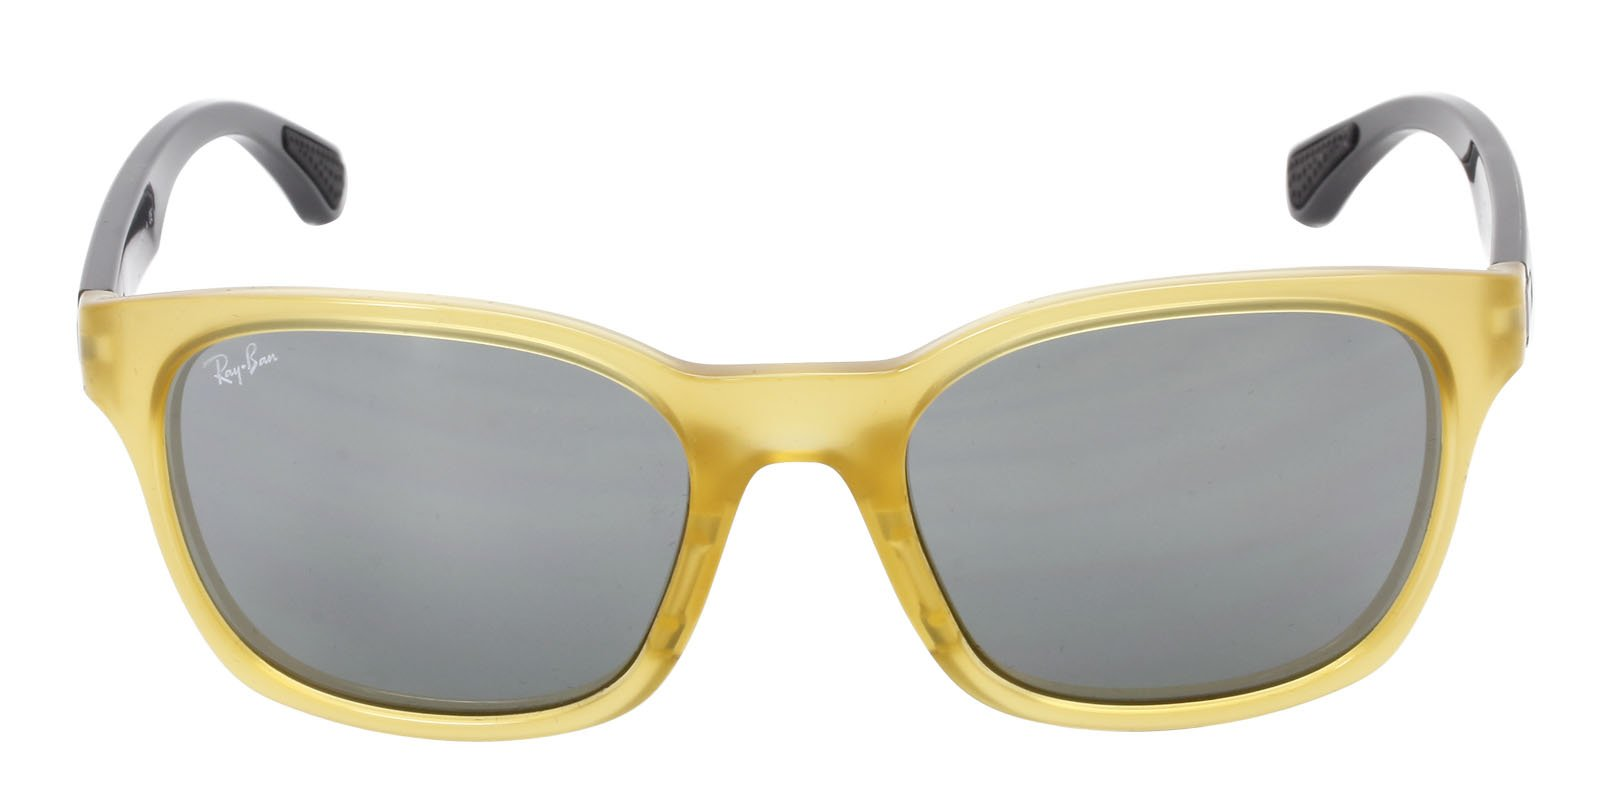 Ray Ban - RB4197 Yellow Oval Unisex Sunglasses - 56mm-Sunglasses-Designer Eyes